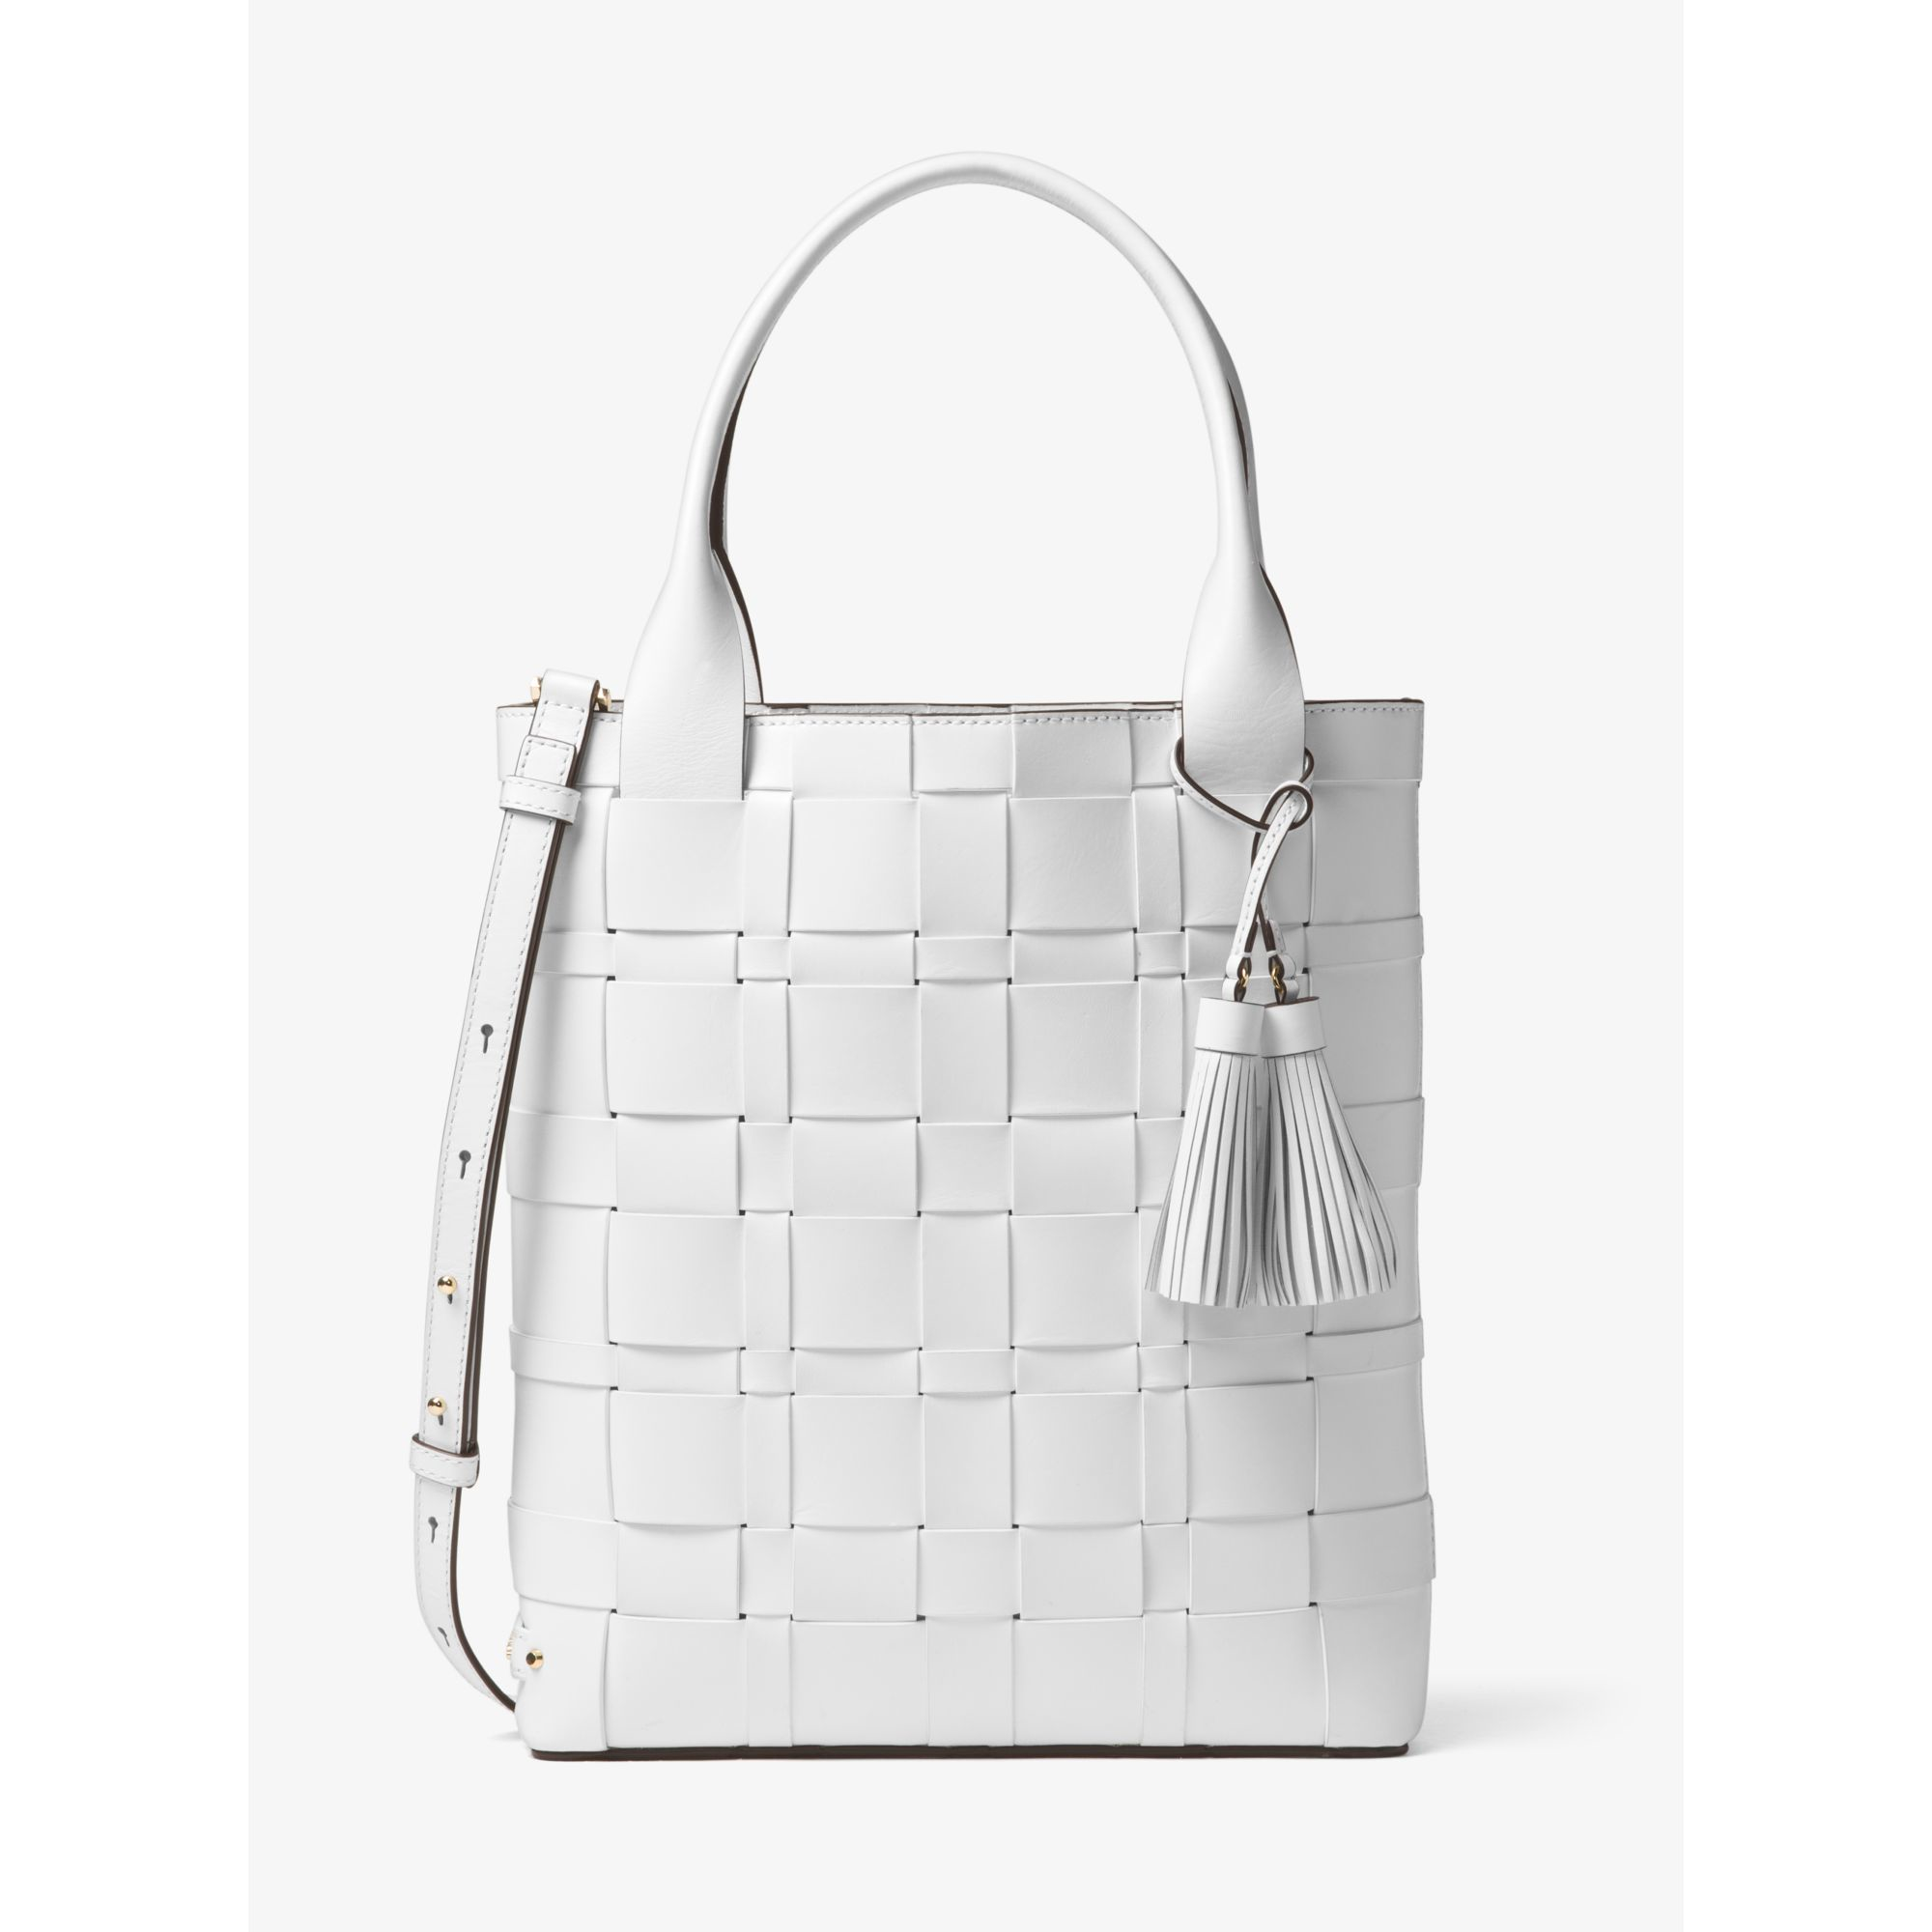 Lyst - Michael Kors Vivian Large Woven Leather Tote in White 71bd99ef7cfa4